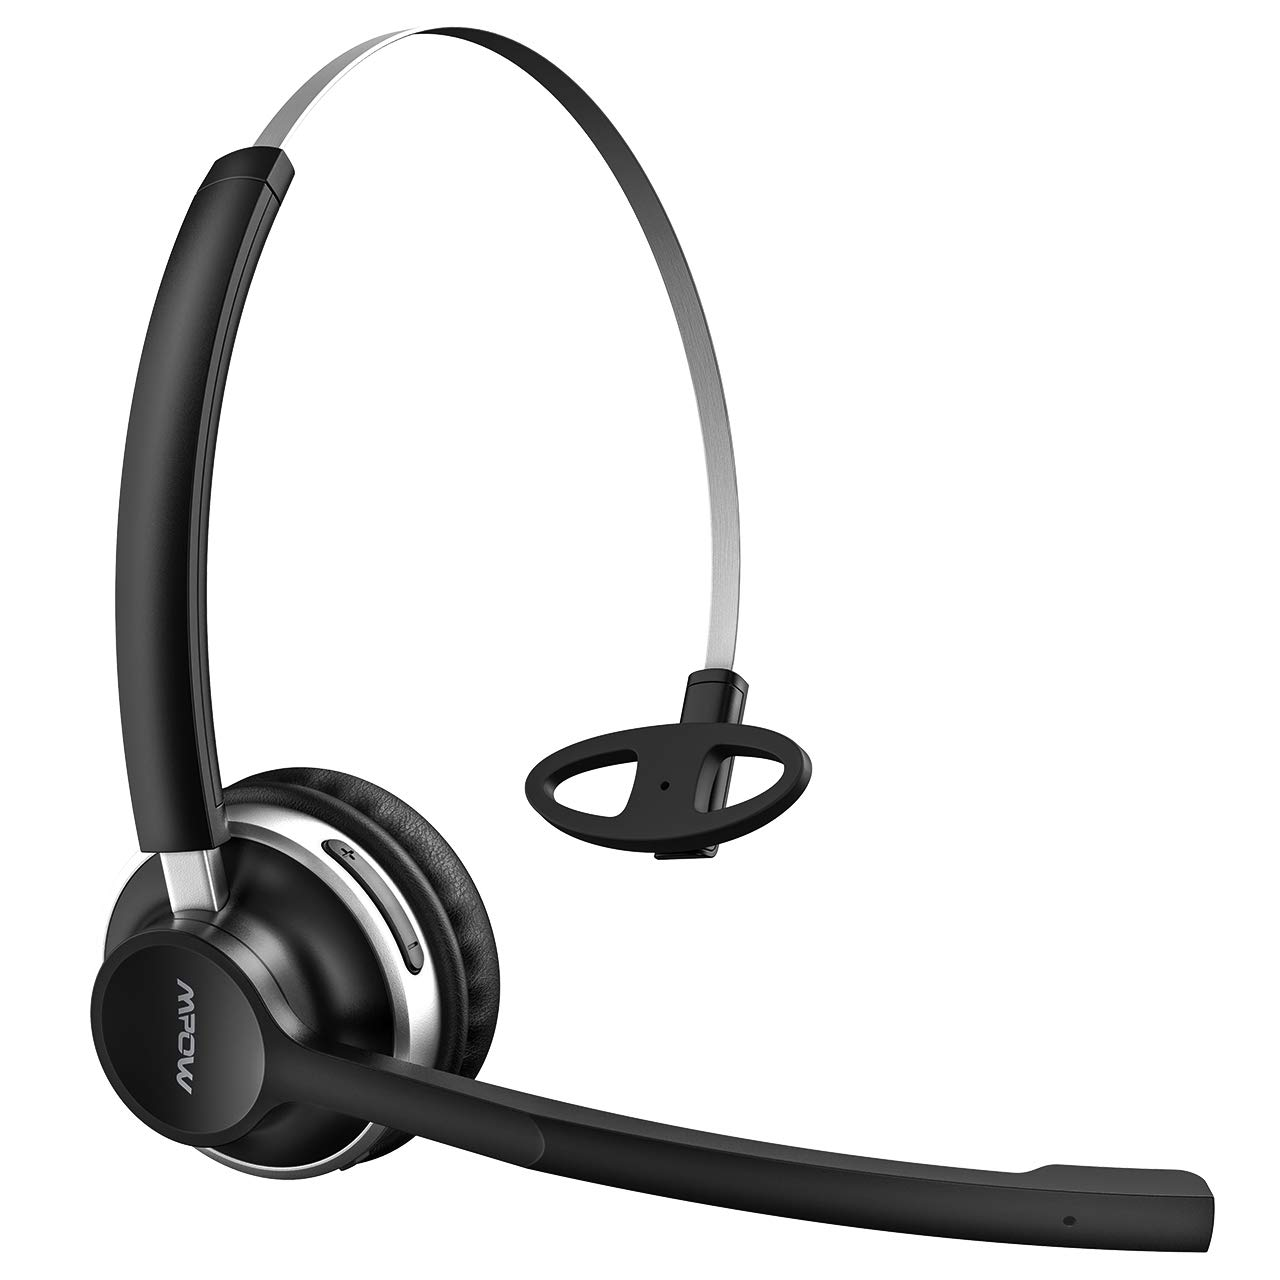 Mpow Wireless Office Headset Truck Driver Monaural Headset V4.1 Bluetooth Bluetooth Headphones with Noise Reduction Mic, Voice Command for Phones, VoIP, Skype, Call Center (Wireless Black)